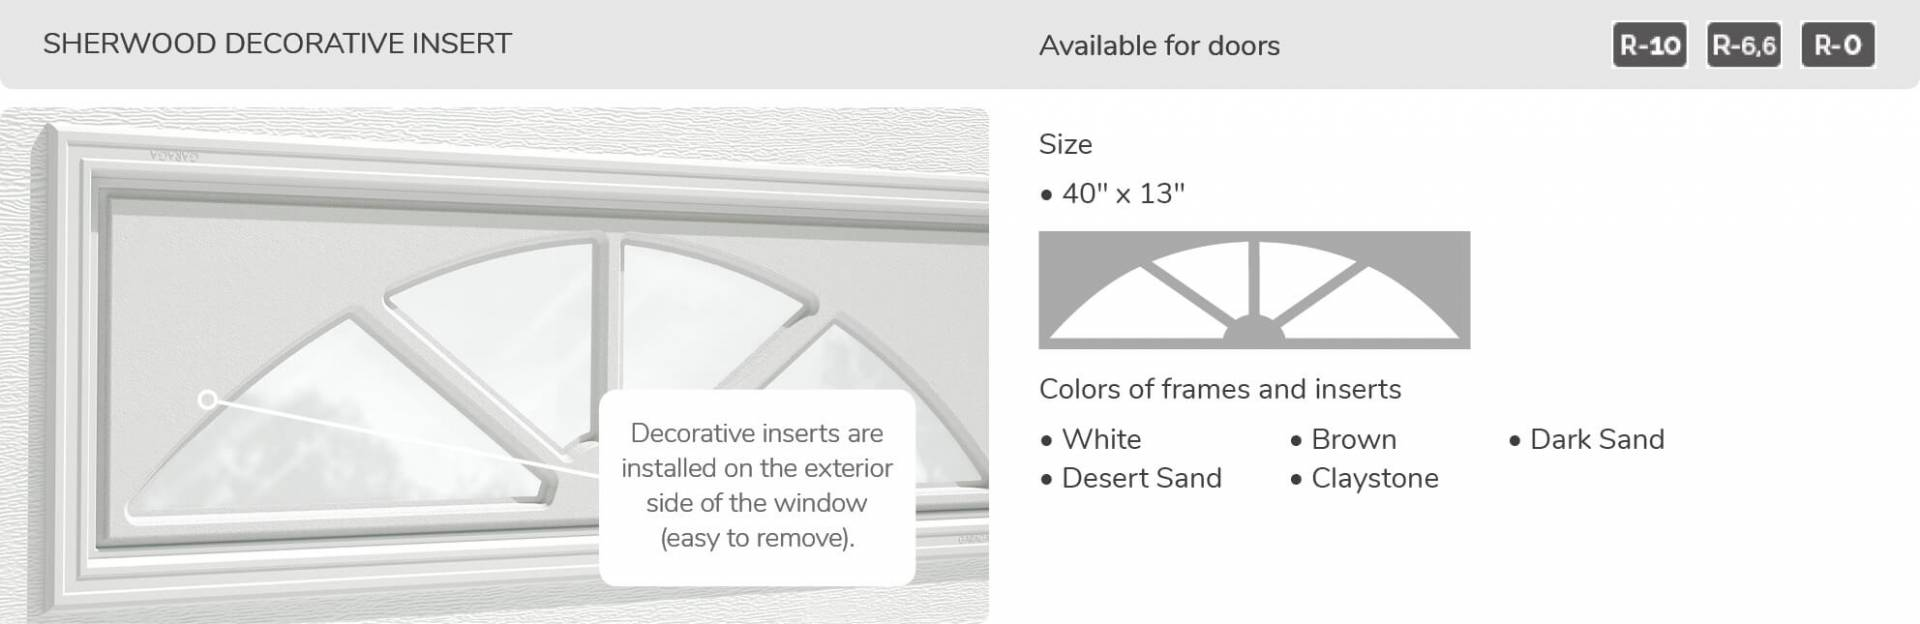 "Sherwood Decorative Insert, 40"" x 13"", available for doors R-10, R-6.6, R-0"